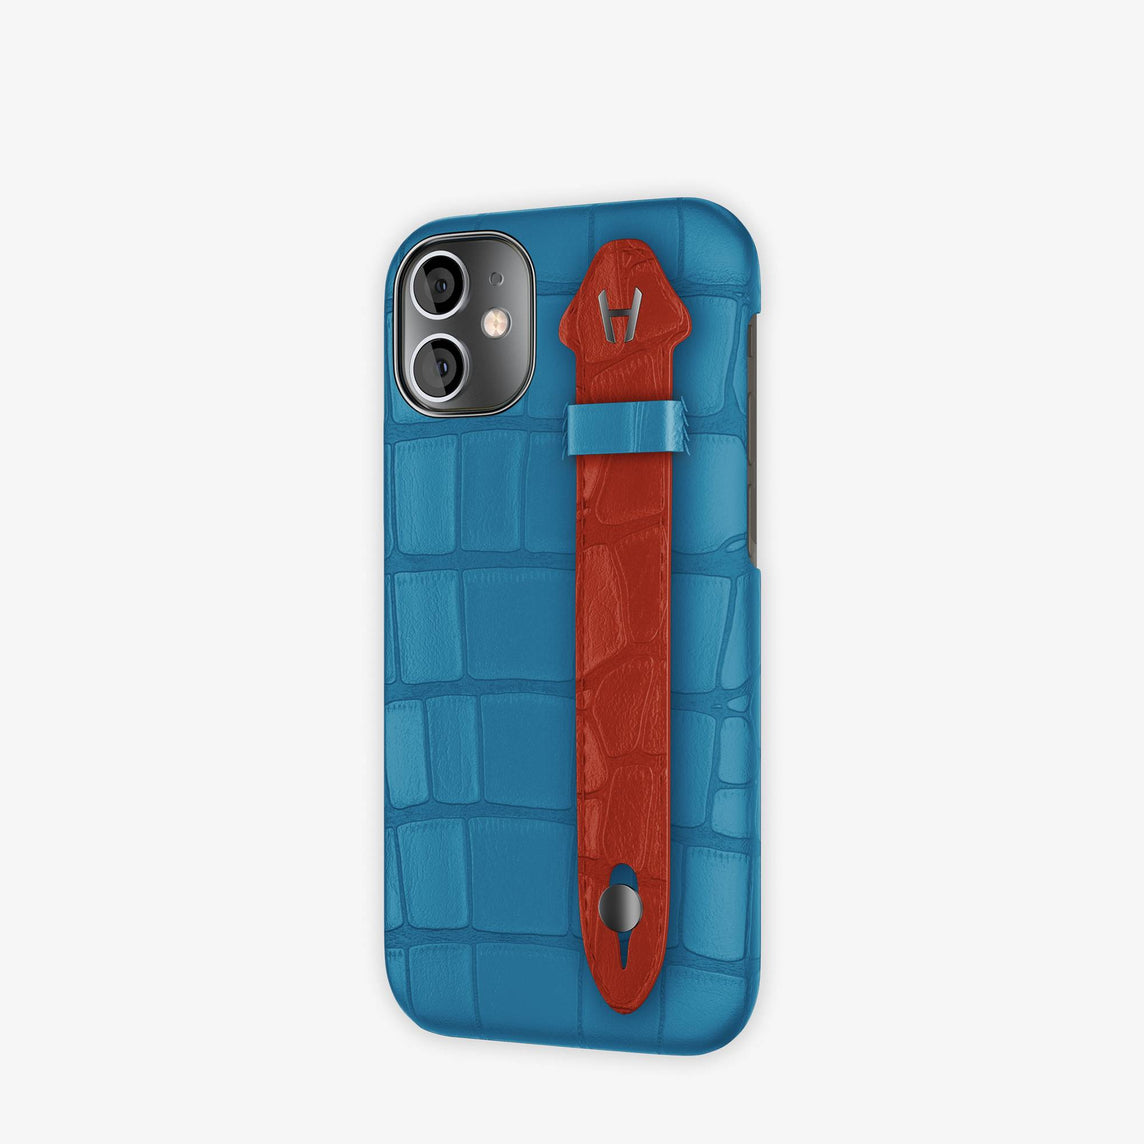 Alligator Side Finger Case iPhone 12 Mini | Blue Lagoon/Red Ruby -Black